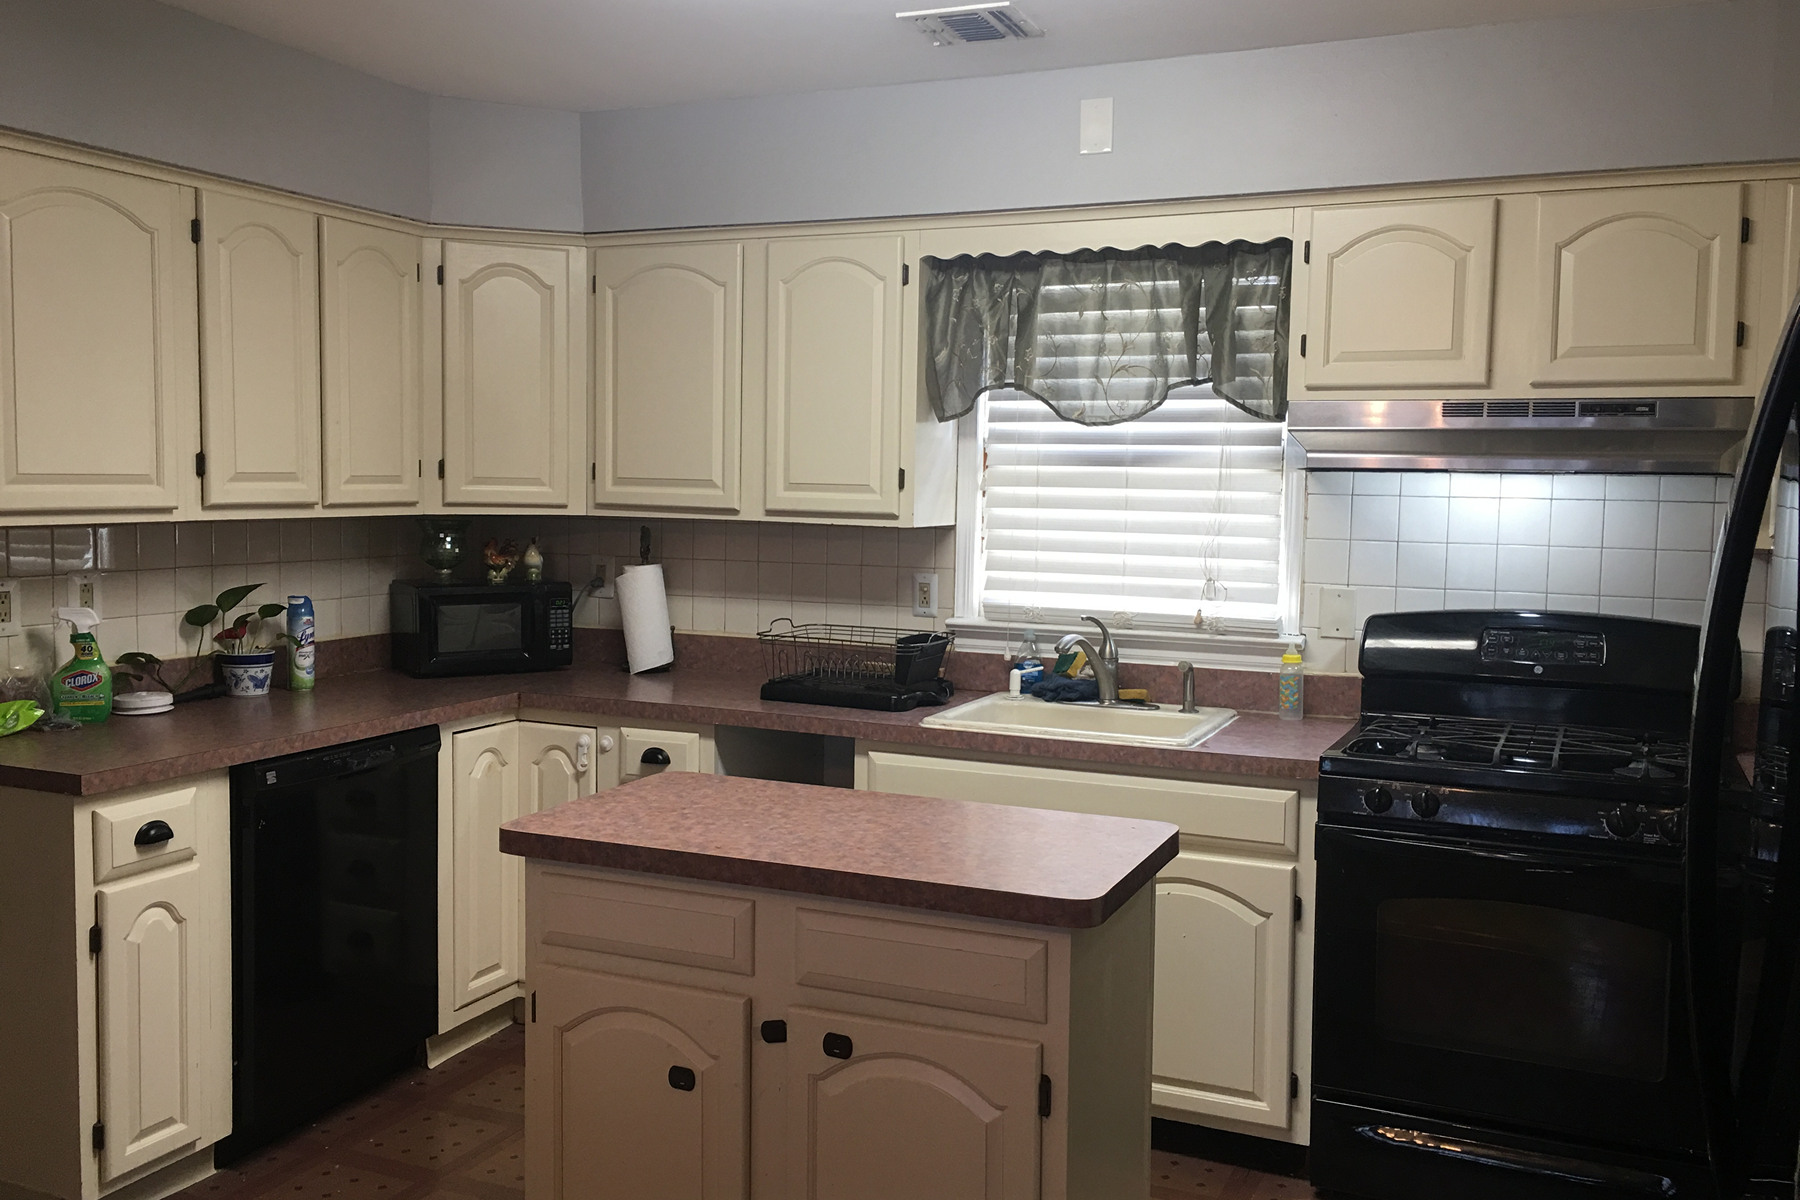 Multi-Family Home for Rent at Beautifully Updated! 157 Weigands Ln 2nd Floor, Secaucus, New Jersey 07094 United States